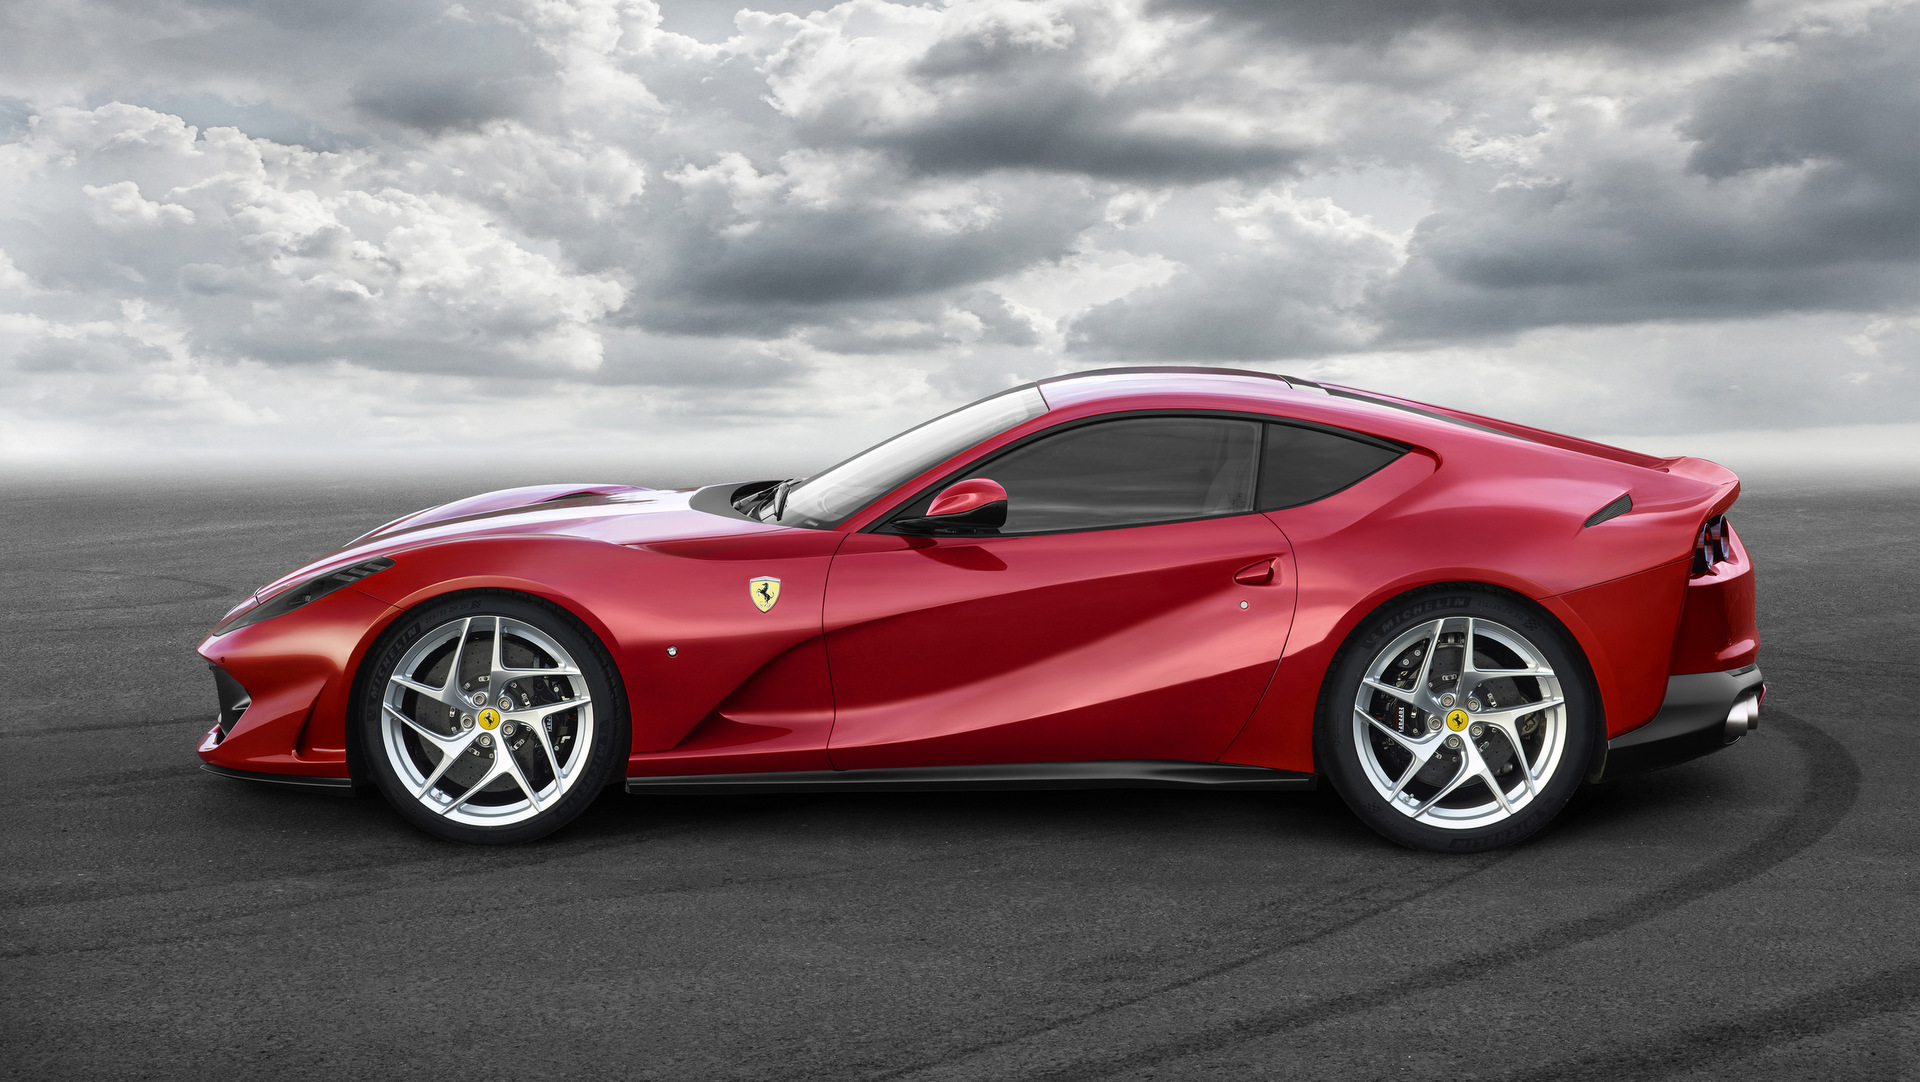 Ferrari 812 superfast car photo side view wallpaper - Car side view wallpaper ...